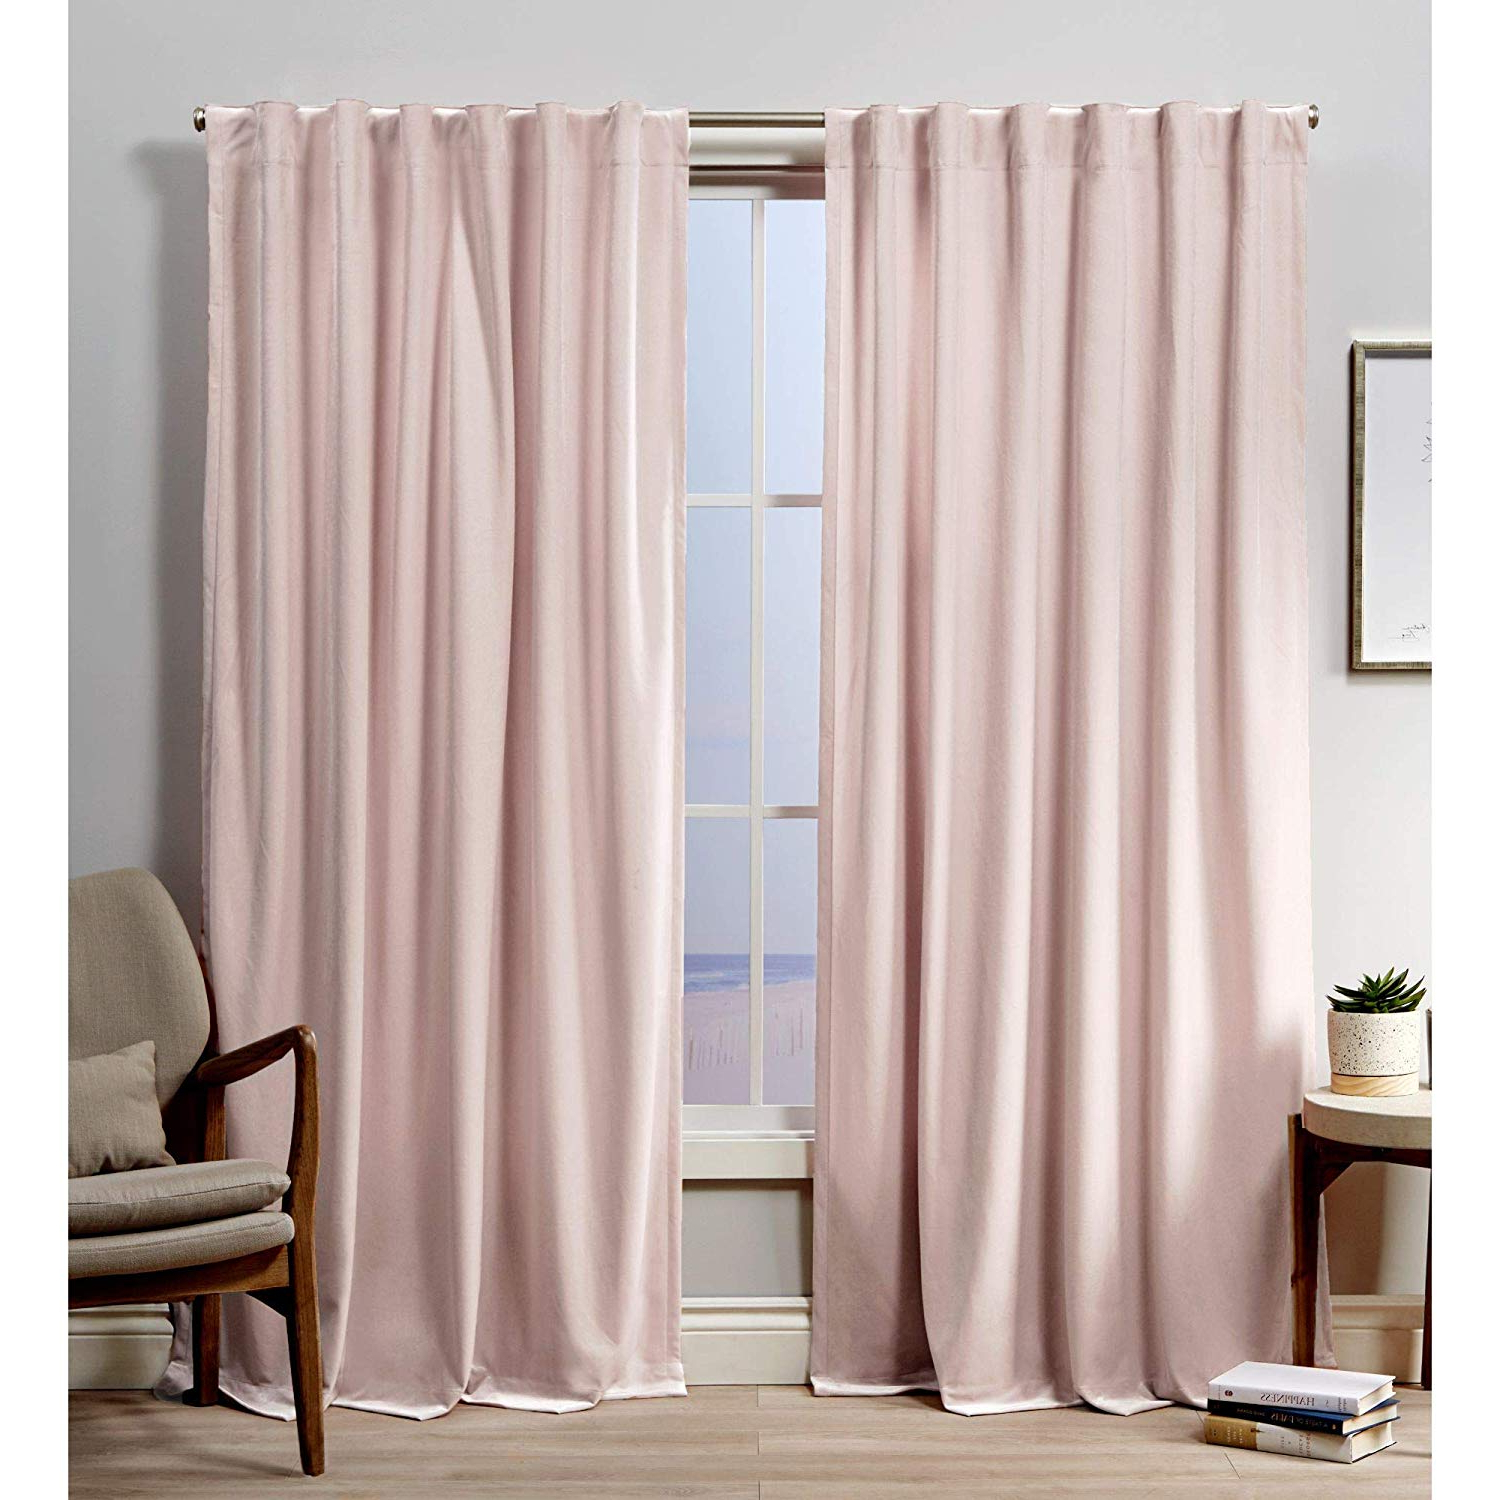 Most Recently Released Velvet Heavyweight Grommet Top Curtain Panel Pairs Pertaining To Exclusive Home Curtains Velvet Hidden Tab Top Curtain Panel, 52x84, Blush, 2 Panels (View 19 of 20)